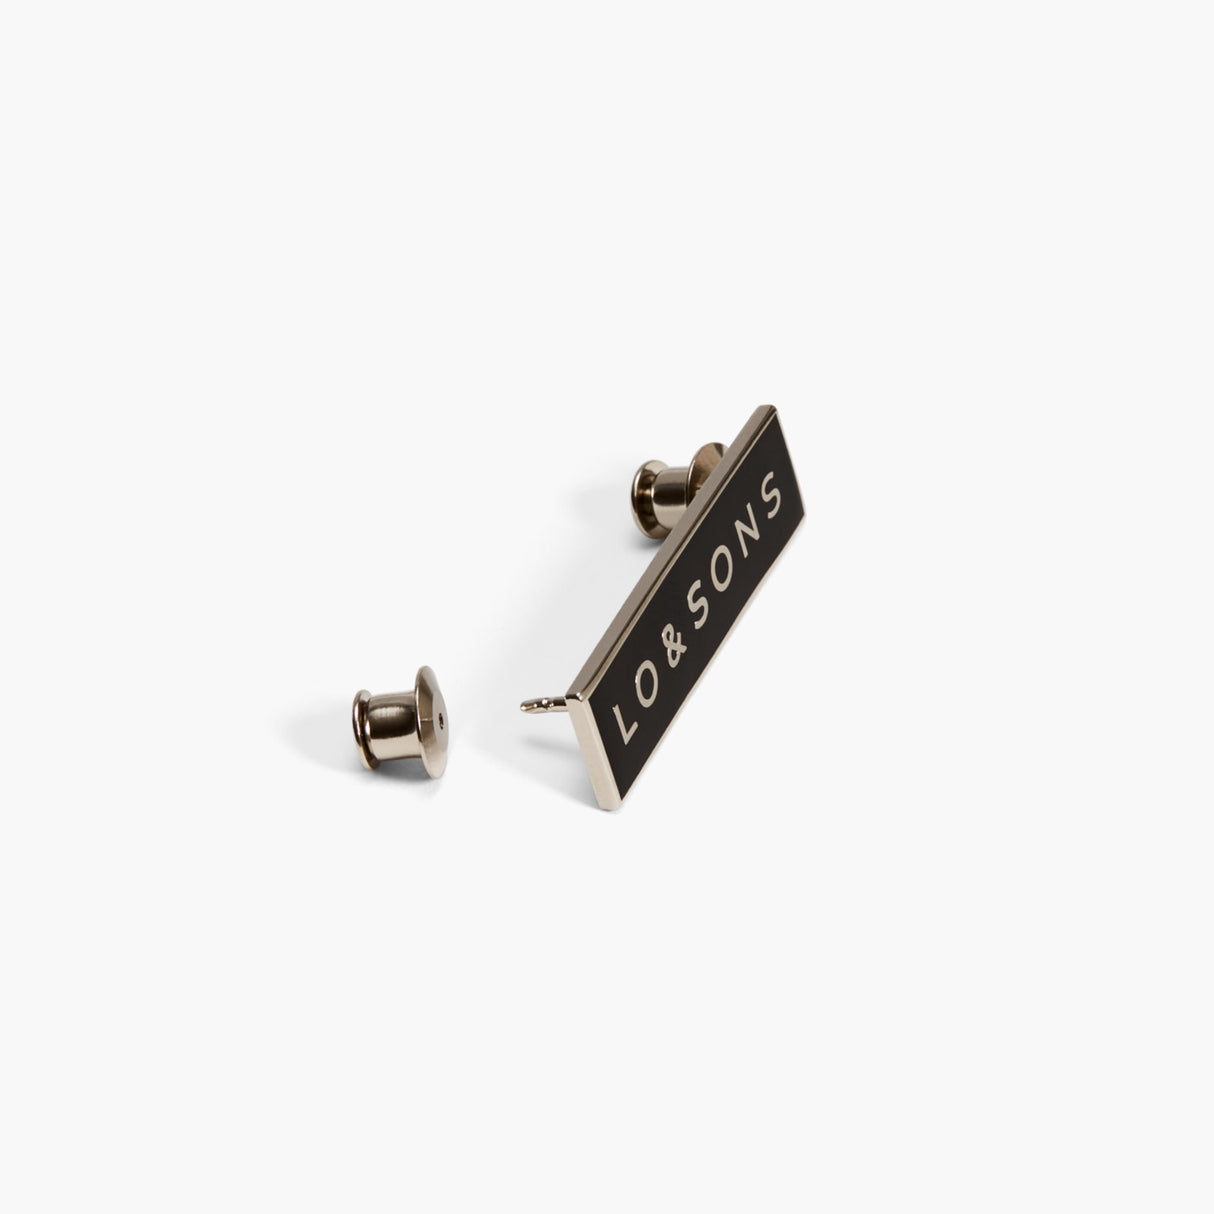 Side - The Pin LS Wordmark - Metal - Black - Small Accessory - Lo & Sons